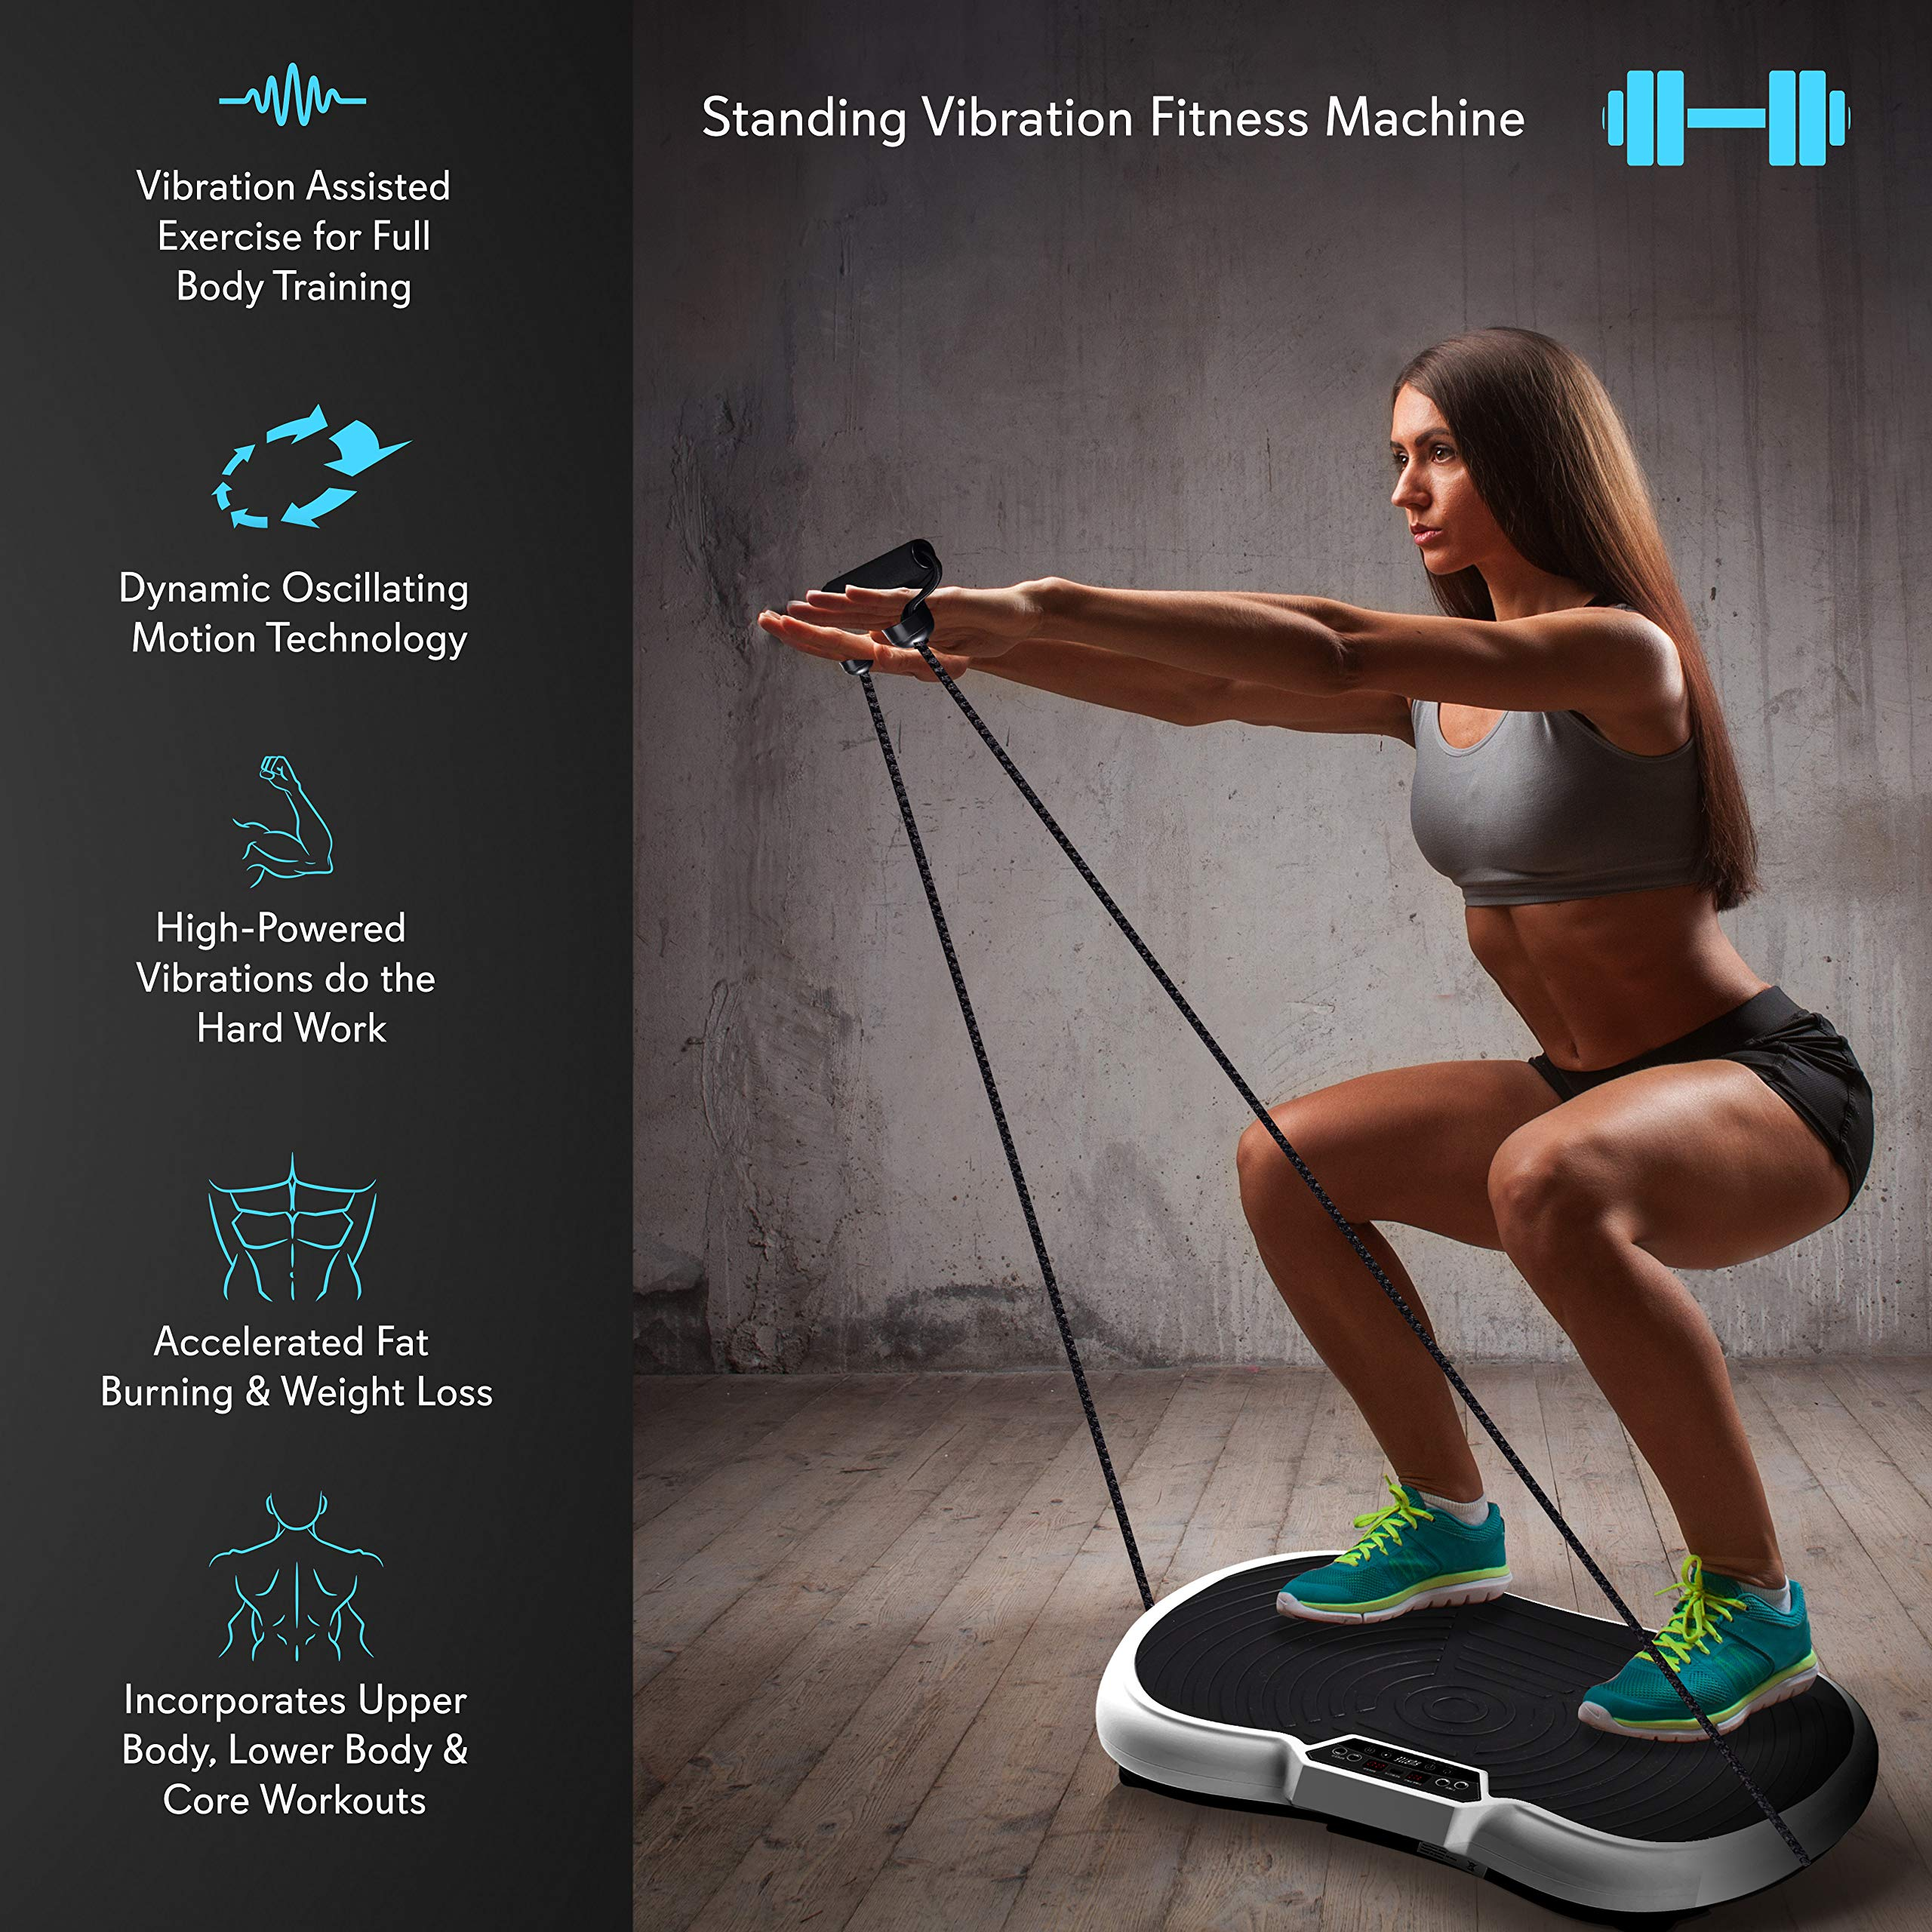 Hurtle Fitness Vibration Platform Workout Machine | Exercise Equipment For Home | Vibration Plate | Balance Your Weight Workout Equipment Includes, Remote Control & Balance Straps Included (HURVBTR30) by Hurtle (Image #3)